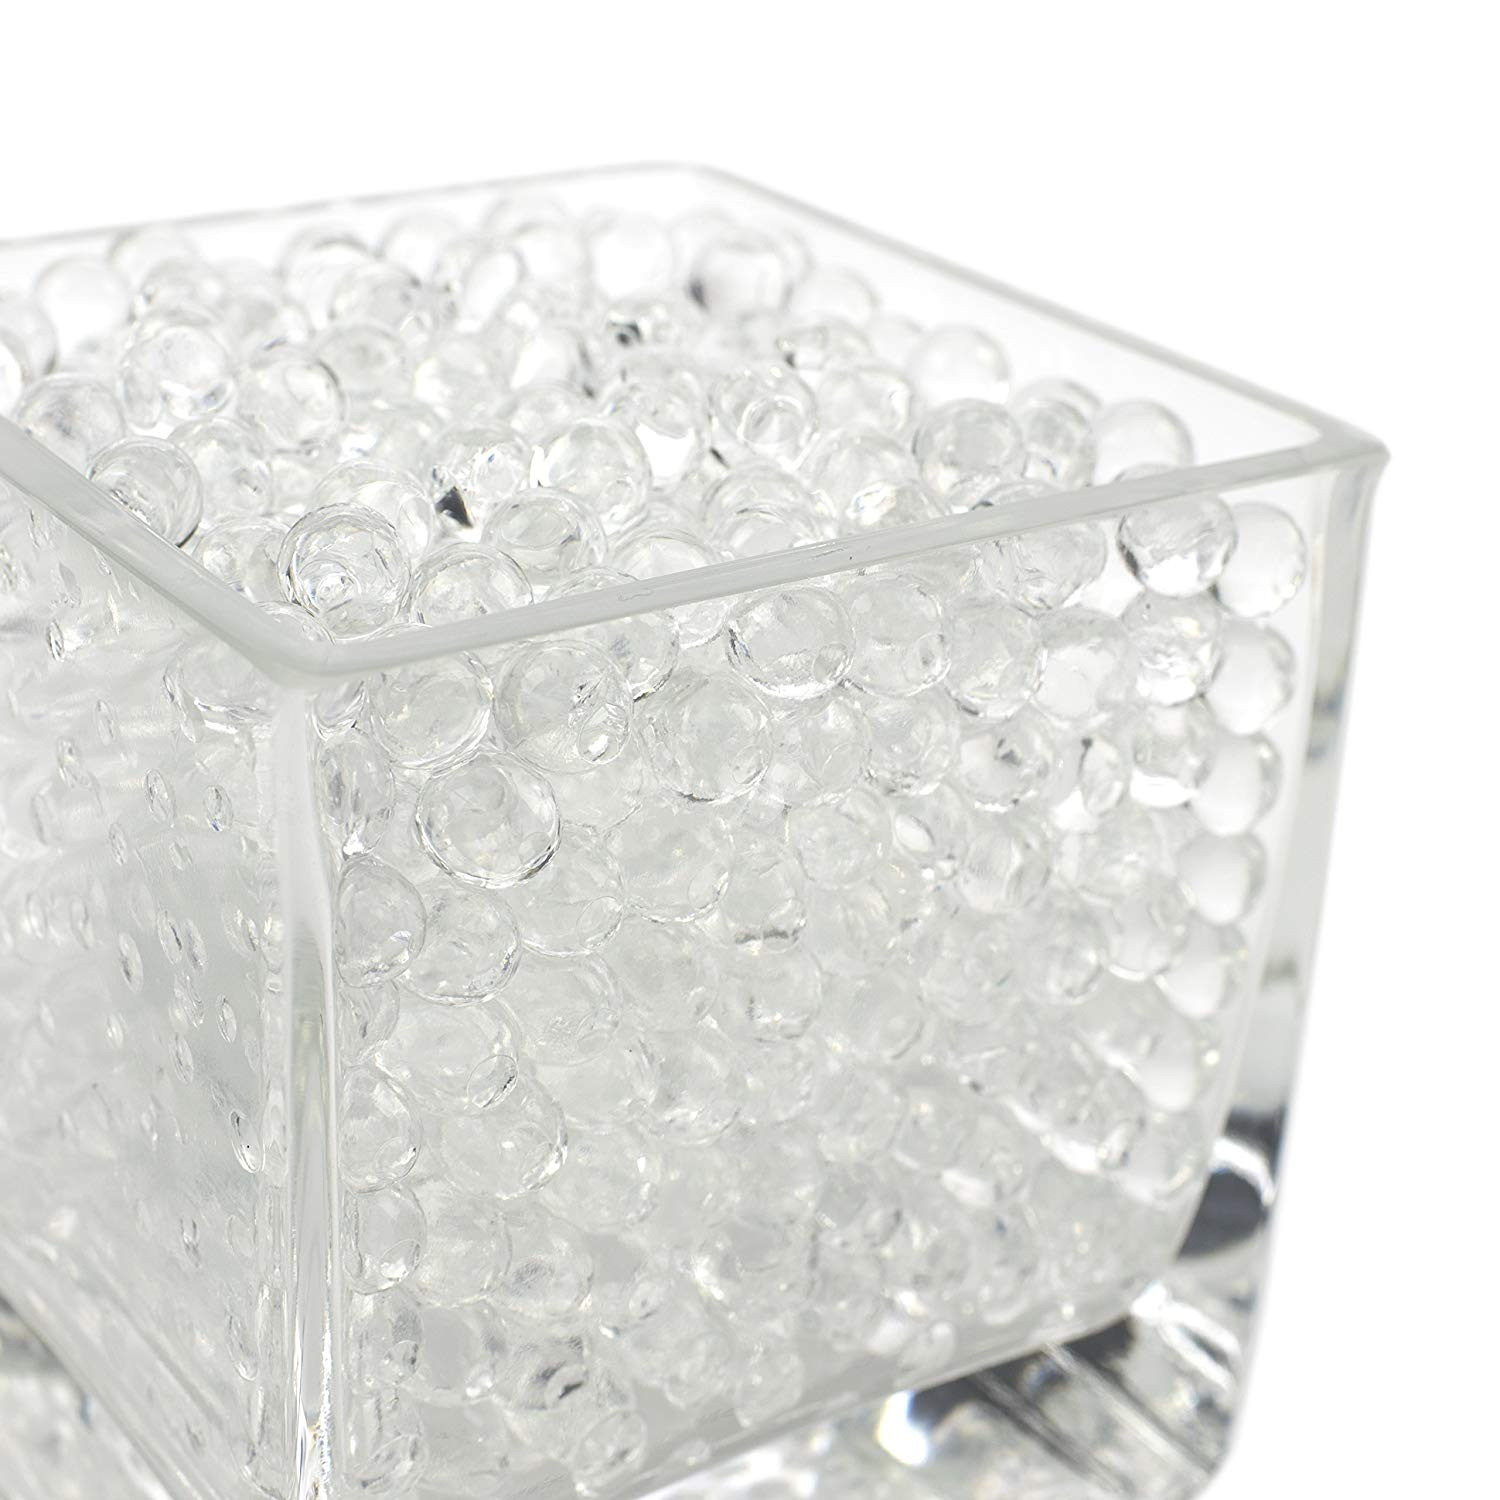 white glass cube vase of amazon com magic beadz clear jelly water beads transparent gel in amazon com magic beadz clear jelly water beads transparent gel pearls vase filler wedding centerpiece candles flower arrangements over 20000